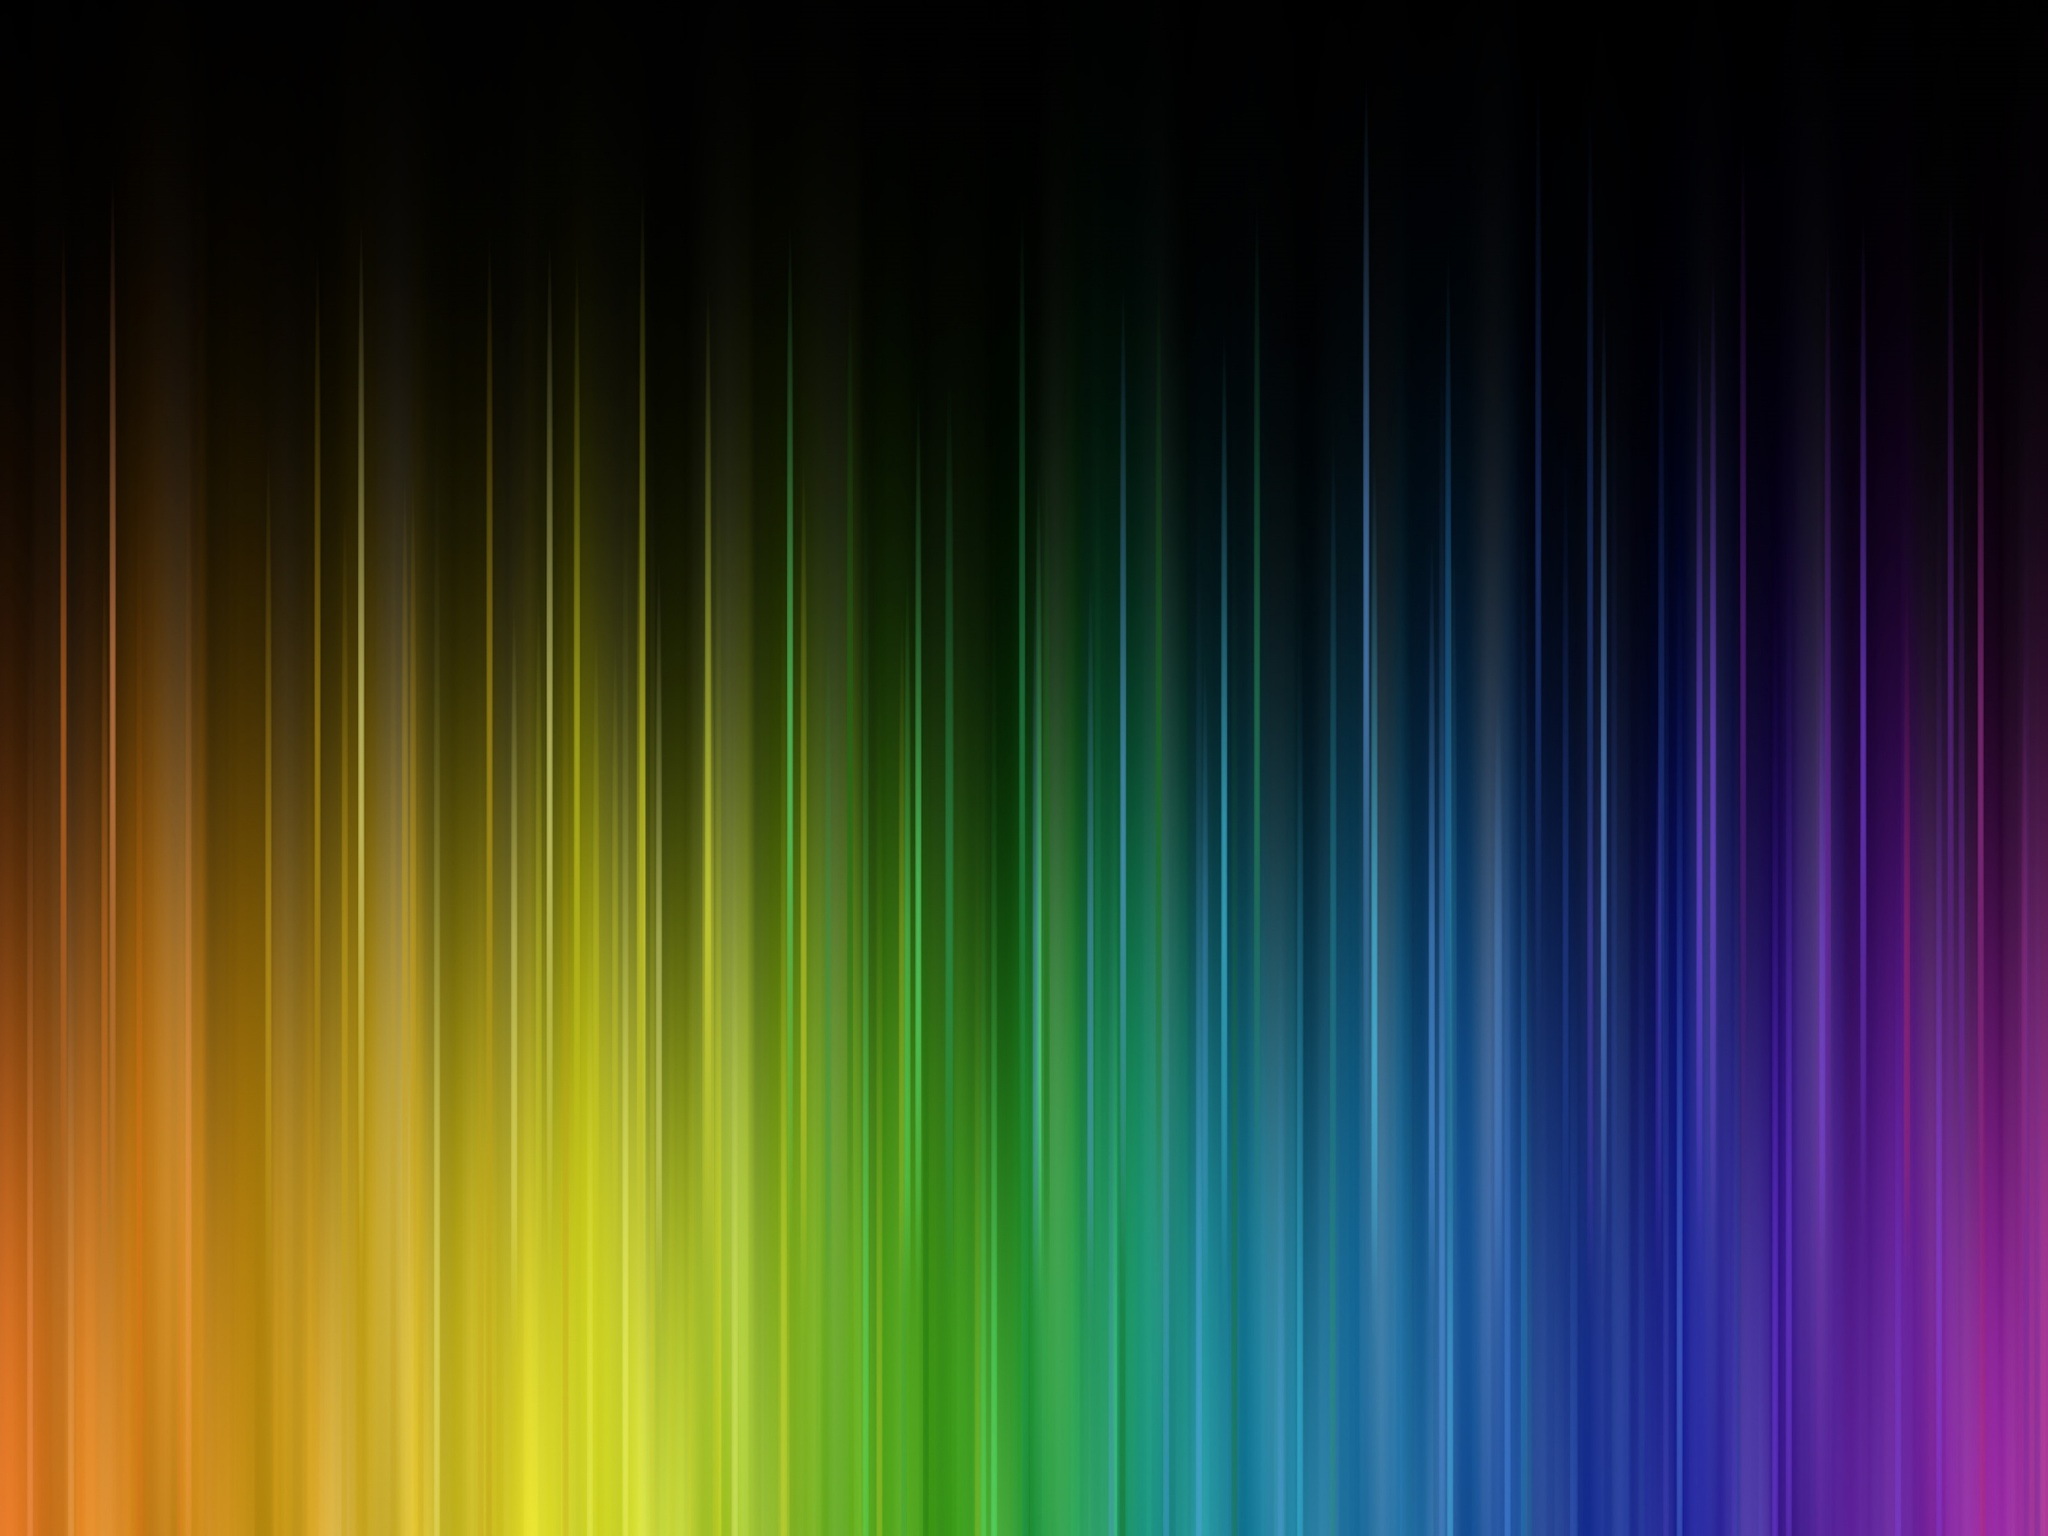 4k Ipad Wallpaper